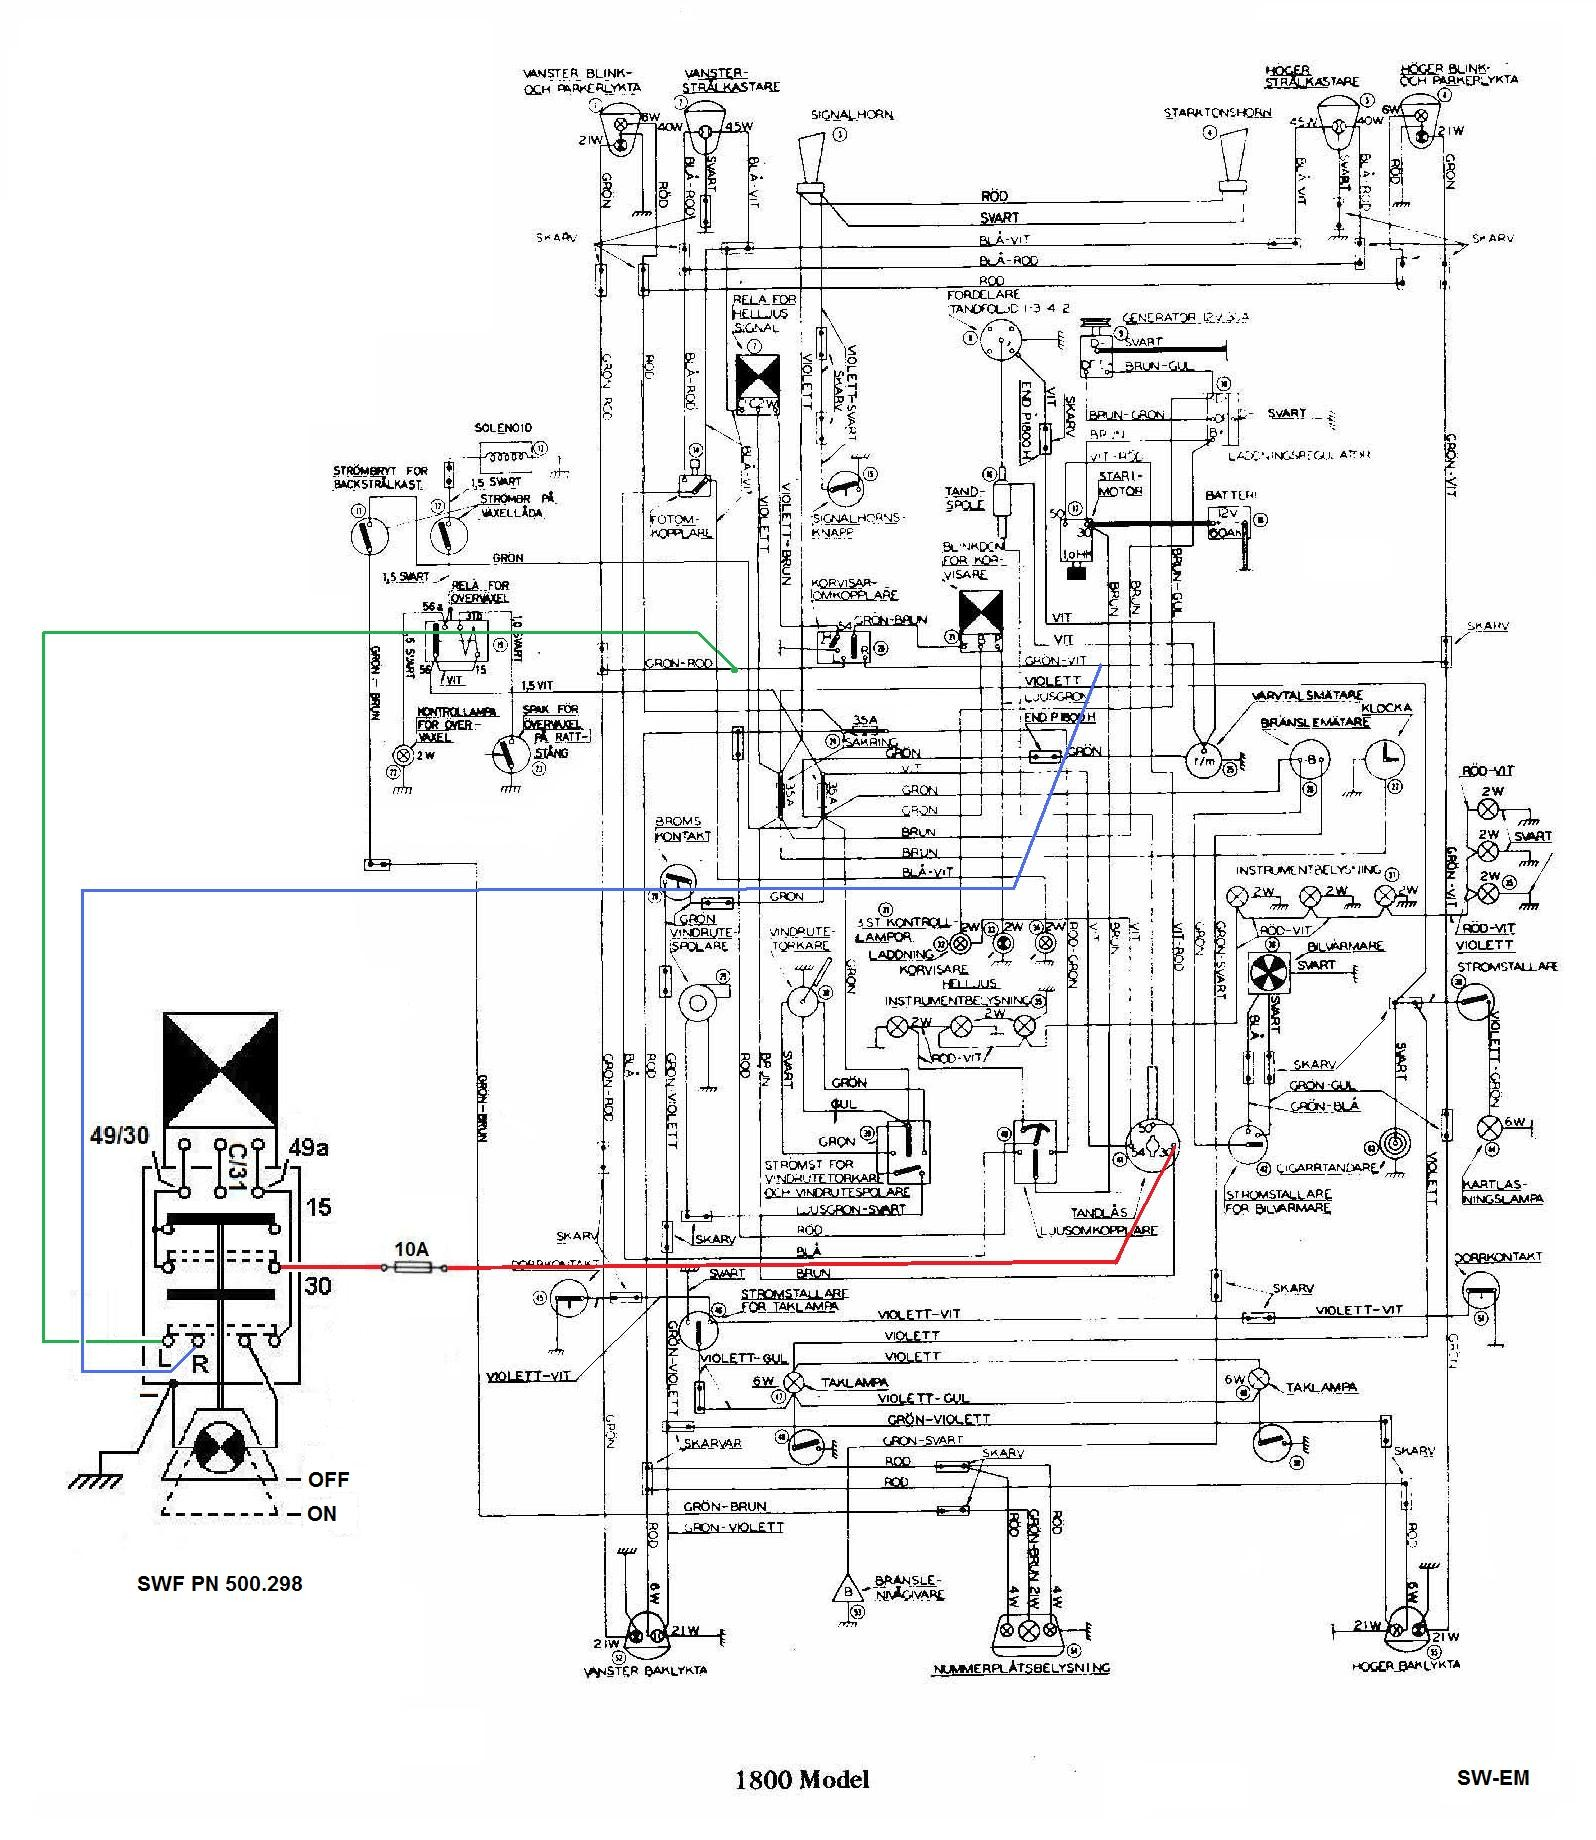 signal light flasher wiring diagram